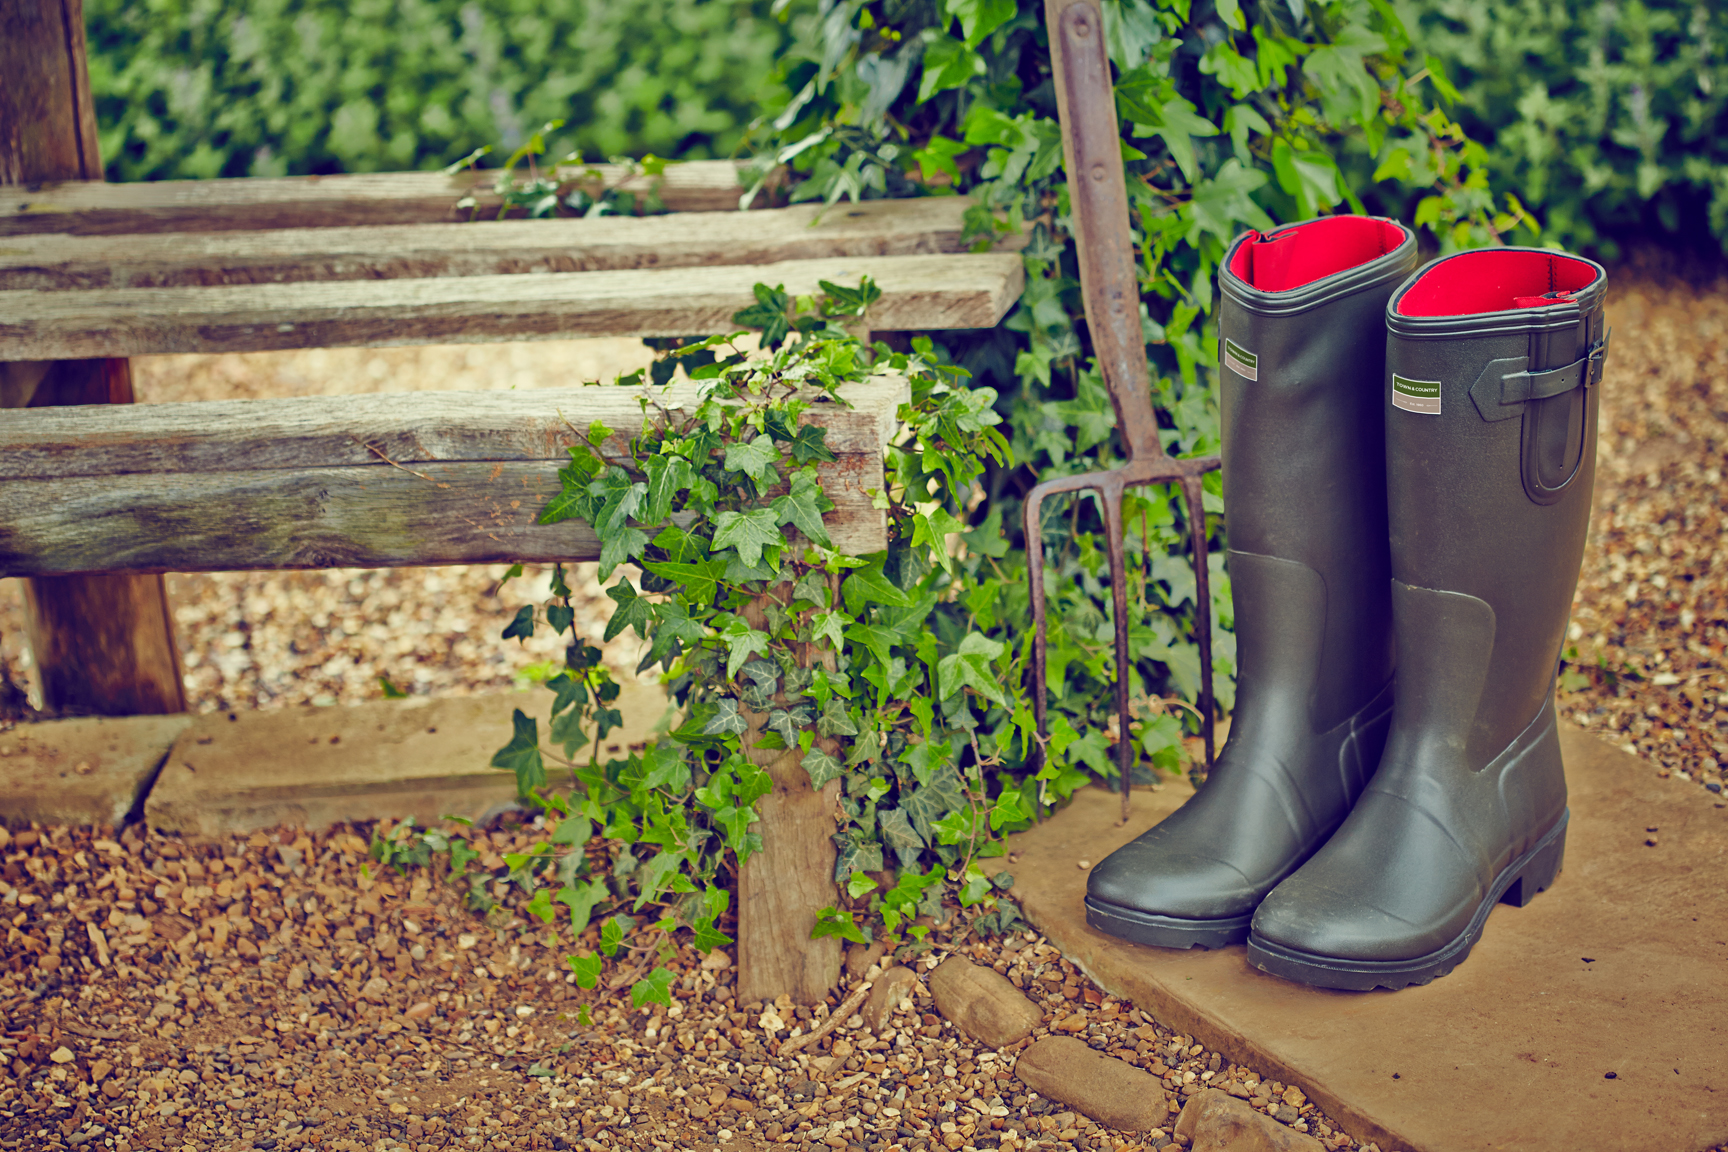 Rutland wellies (Town & Country/PA)